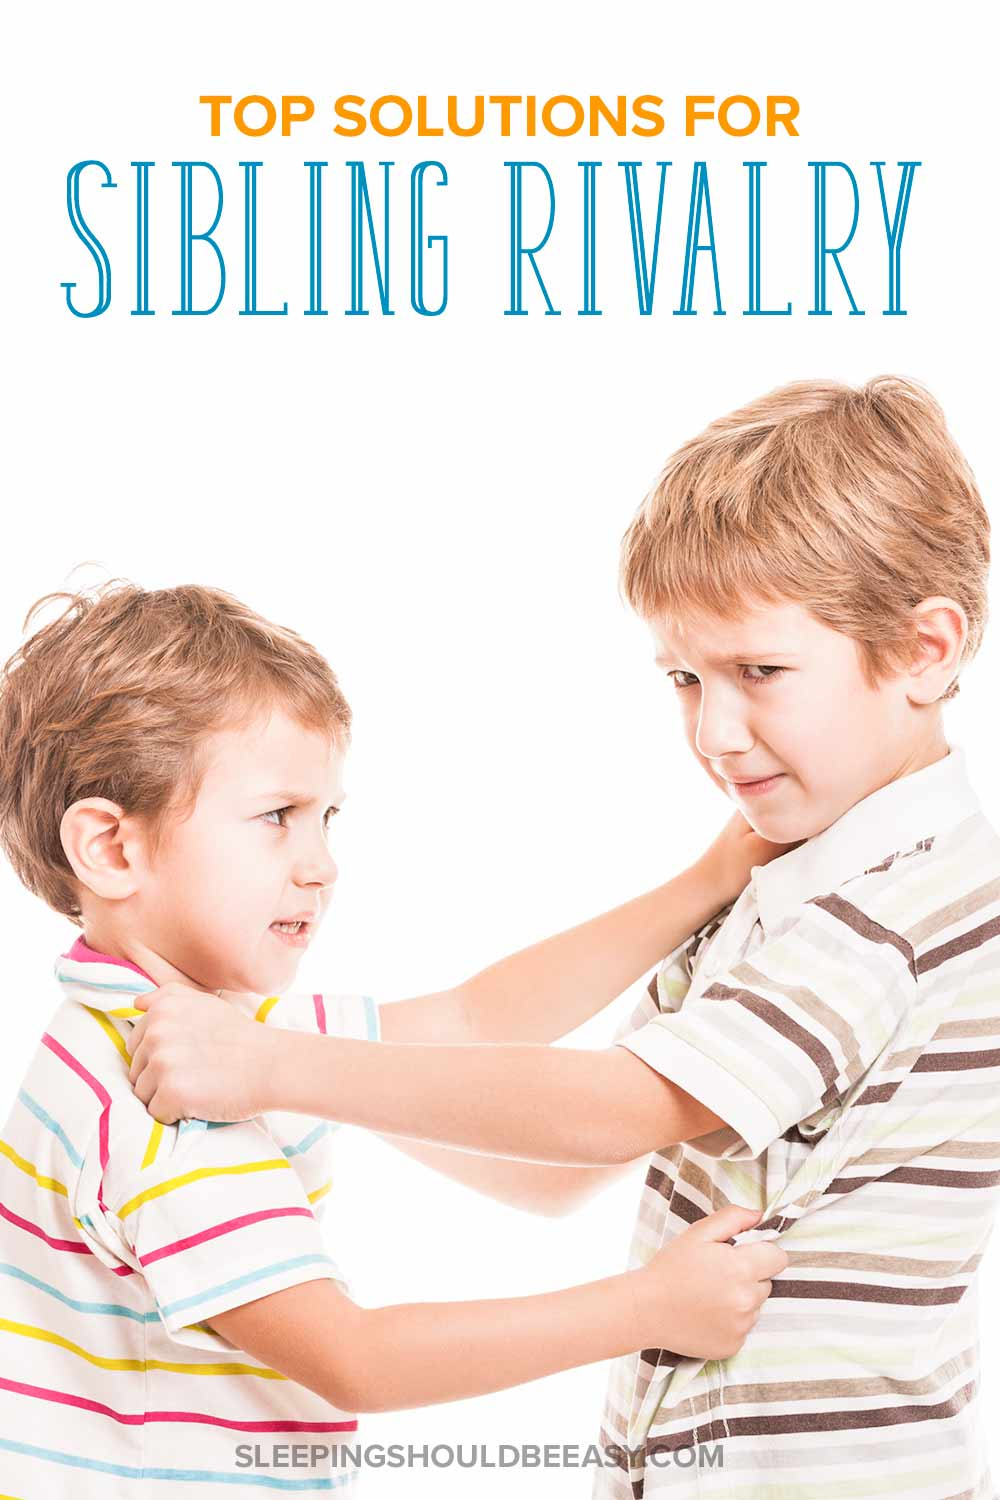 Sibling rivalry solutions: Two brothers fighting